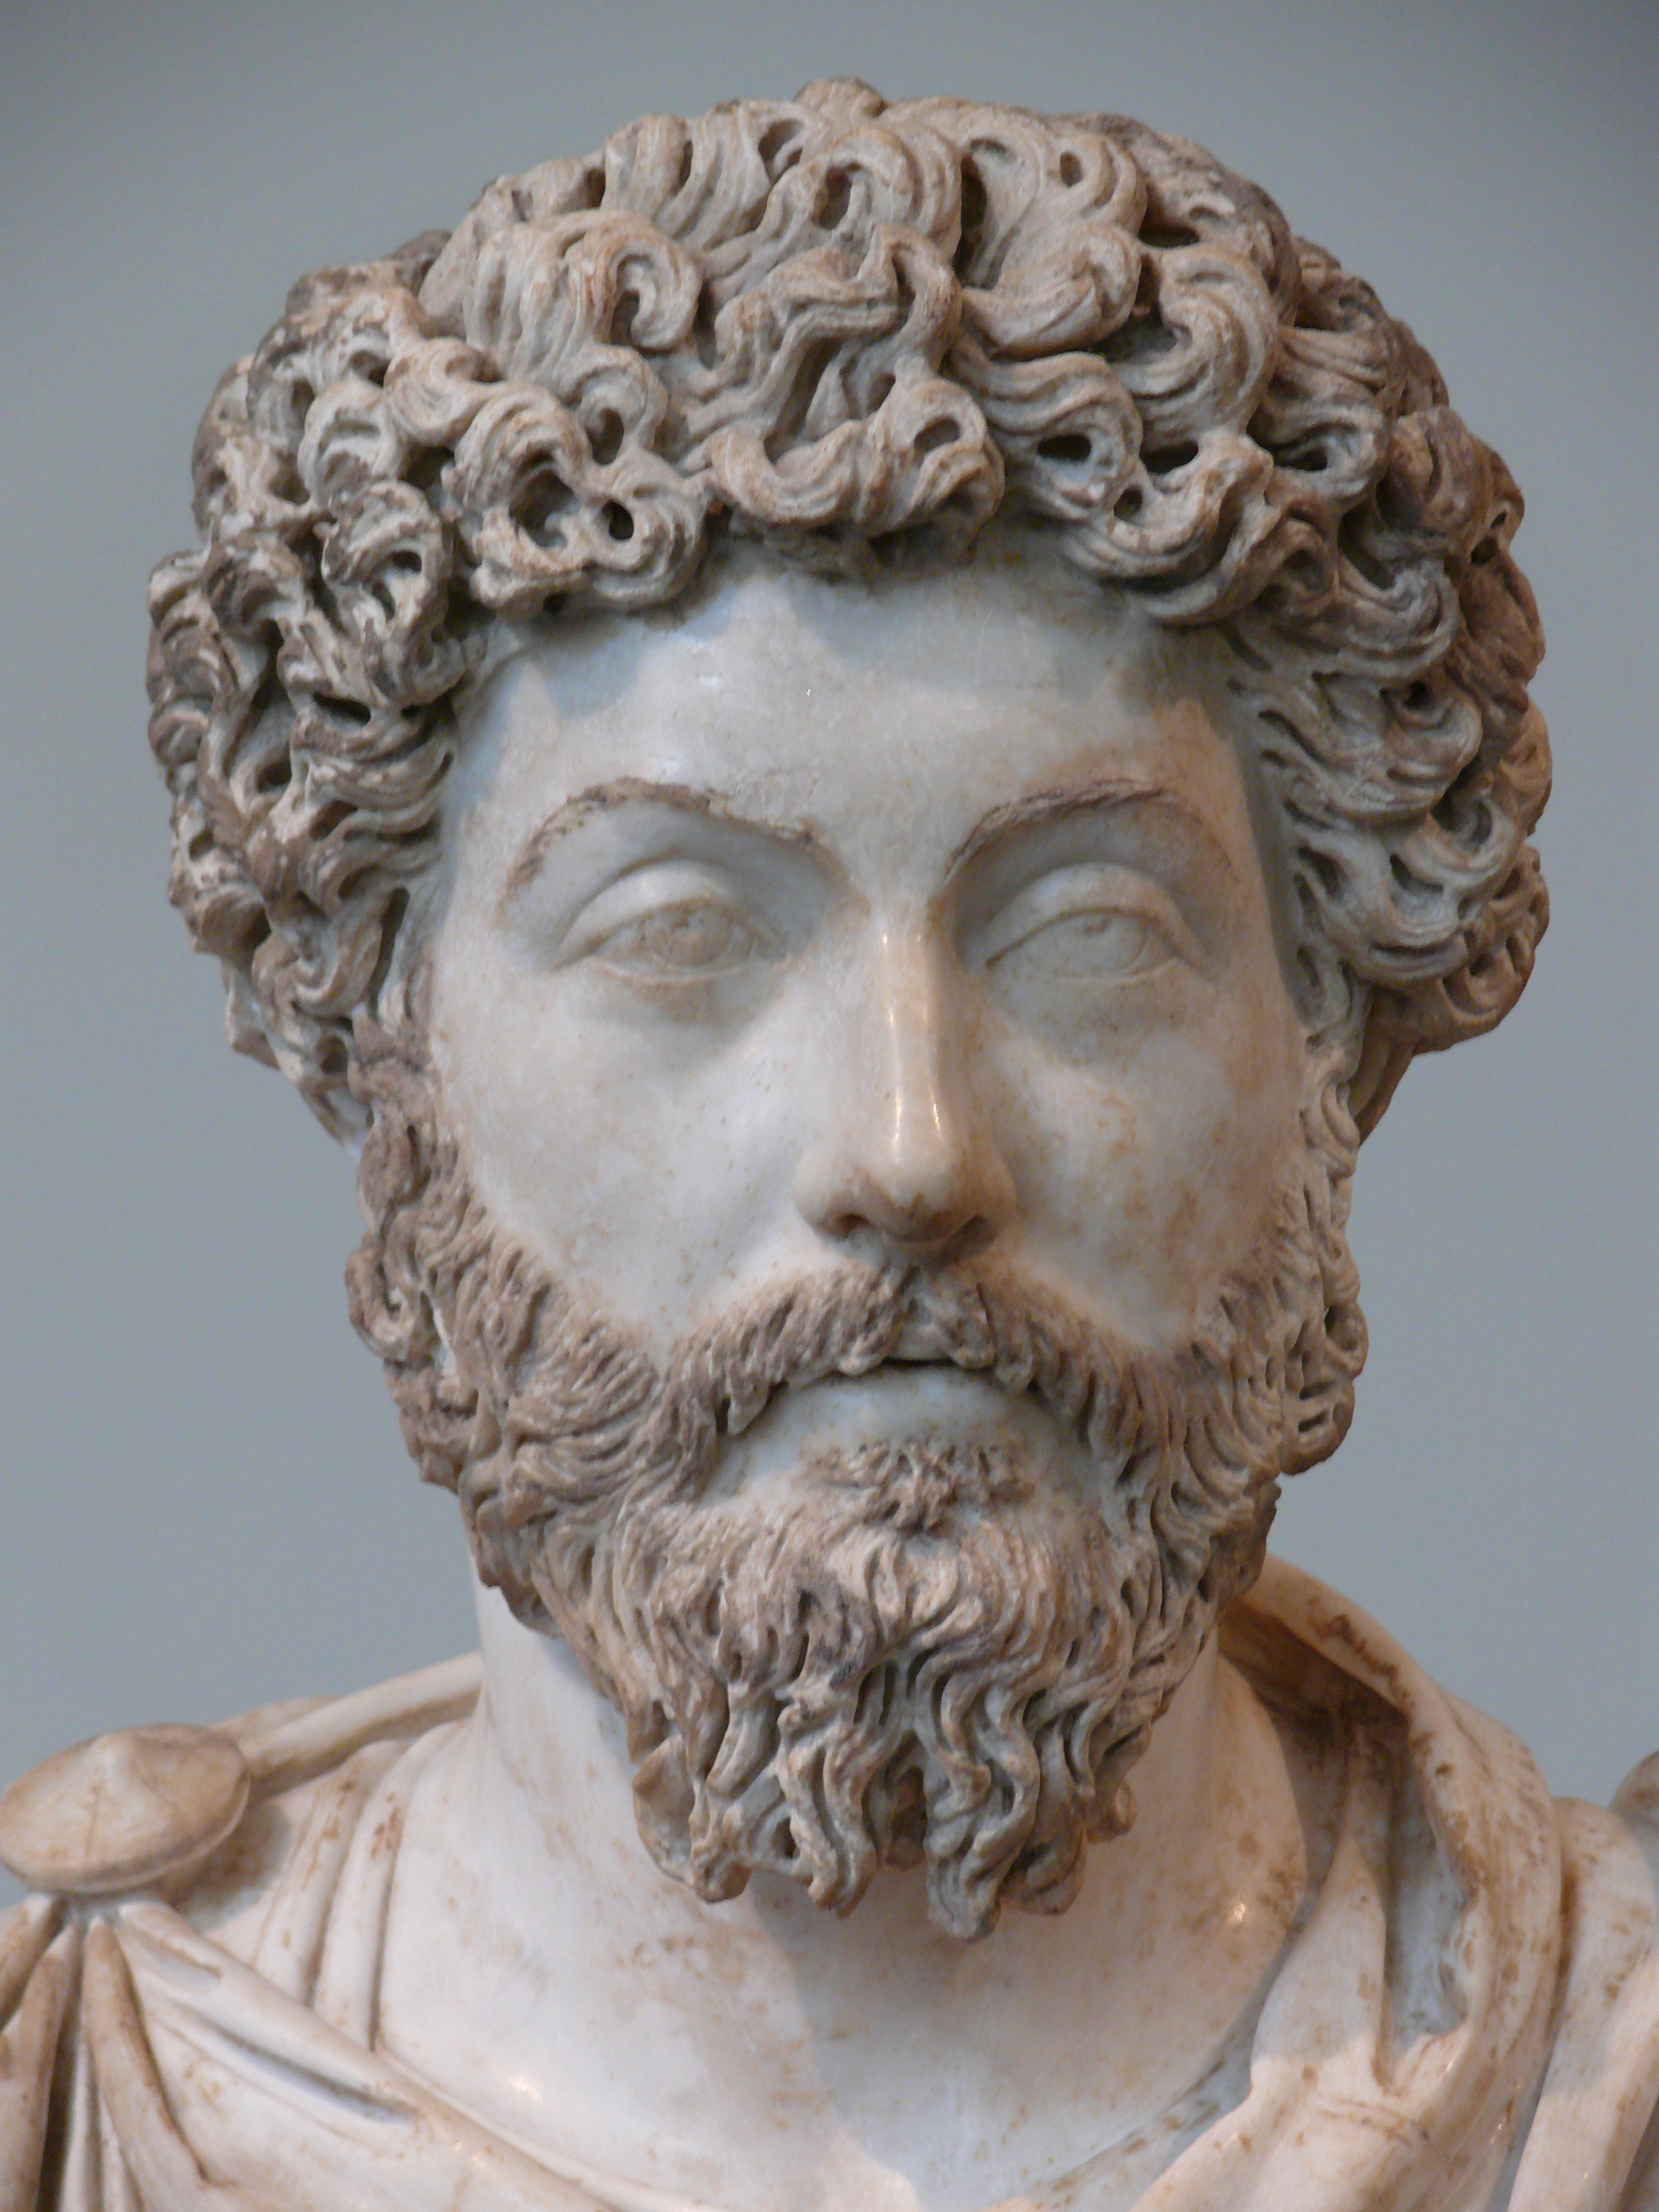 http://www.military-history.org/wp-content/uploads/2014/08/Marcus-Aurelius.jpg